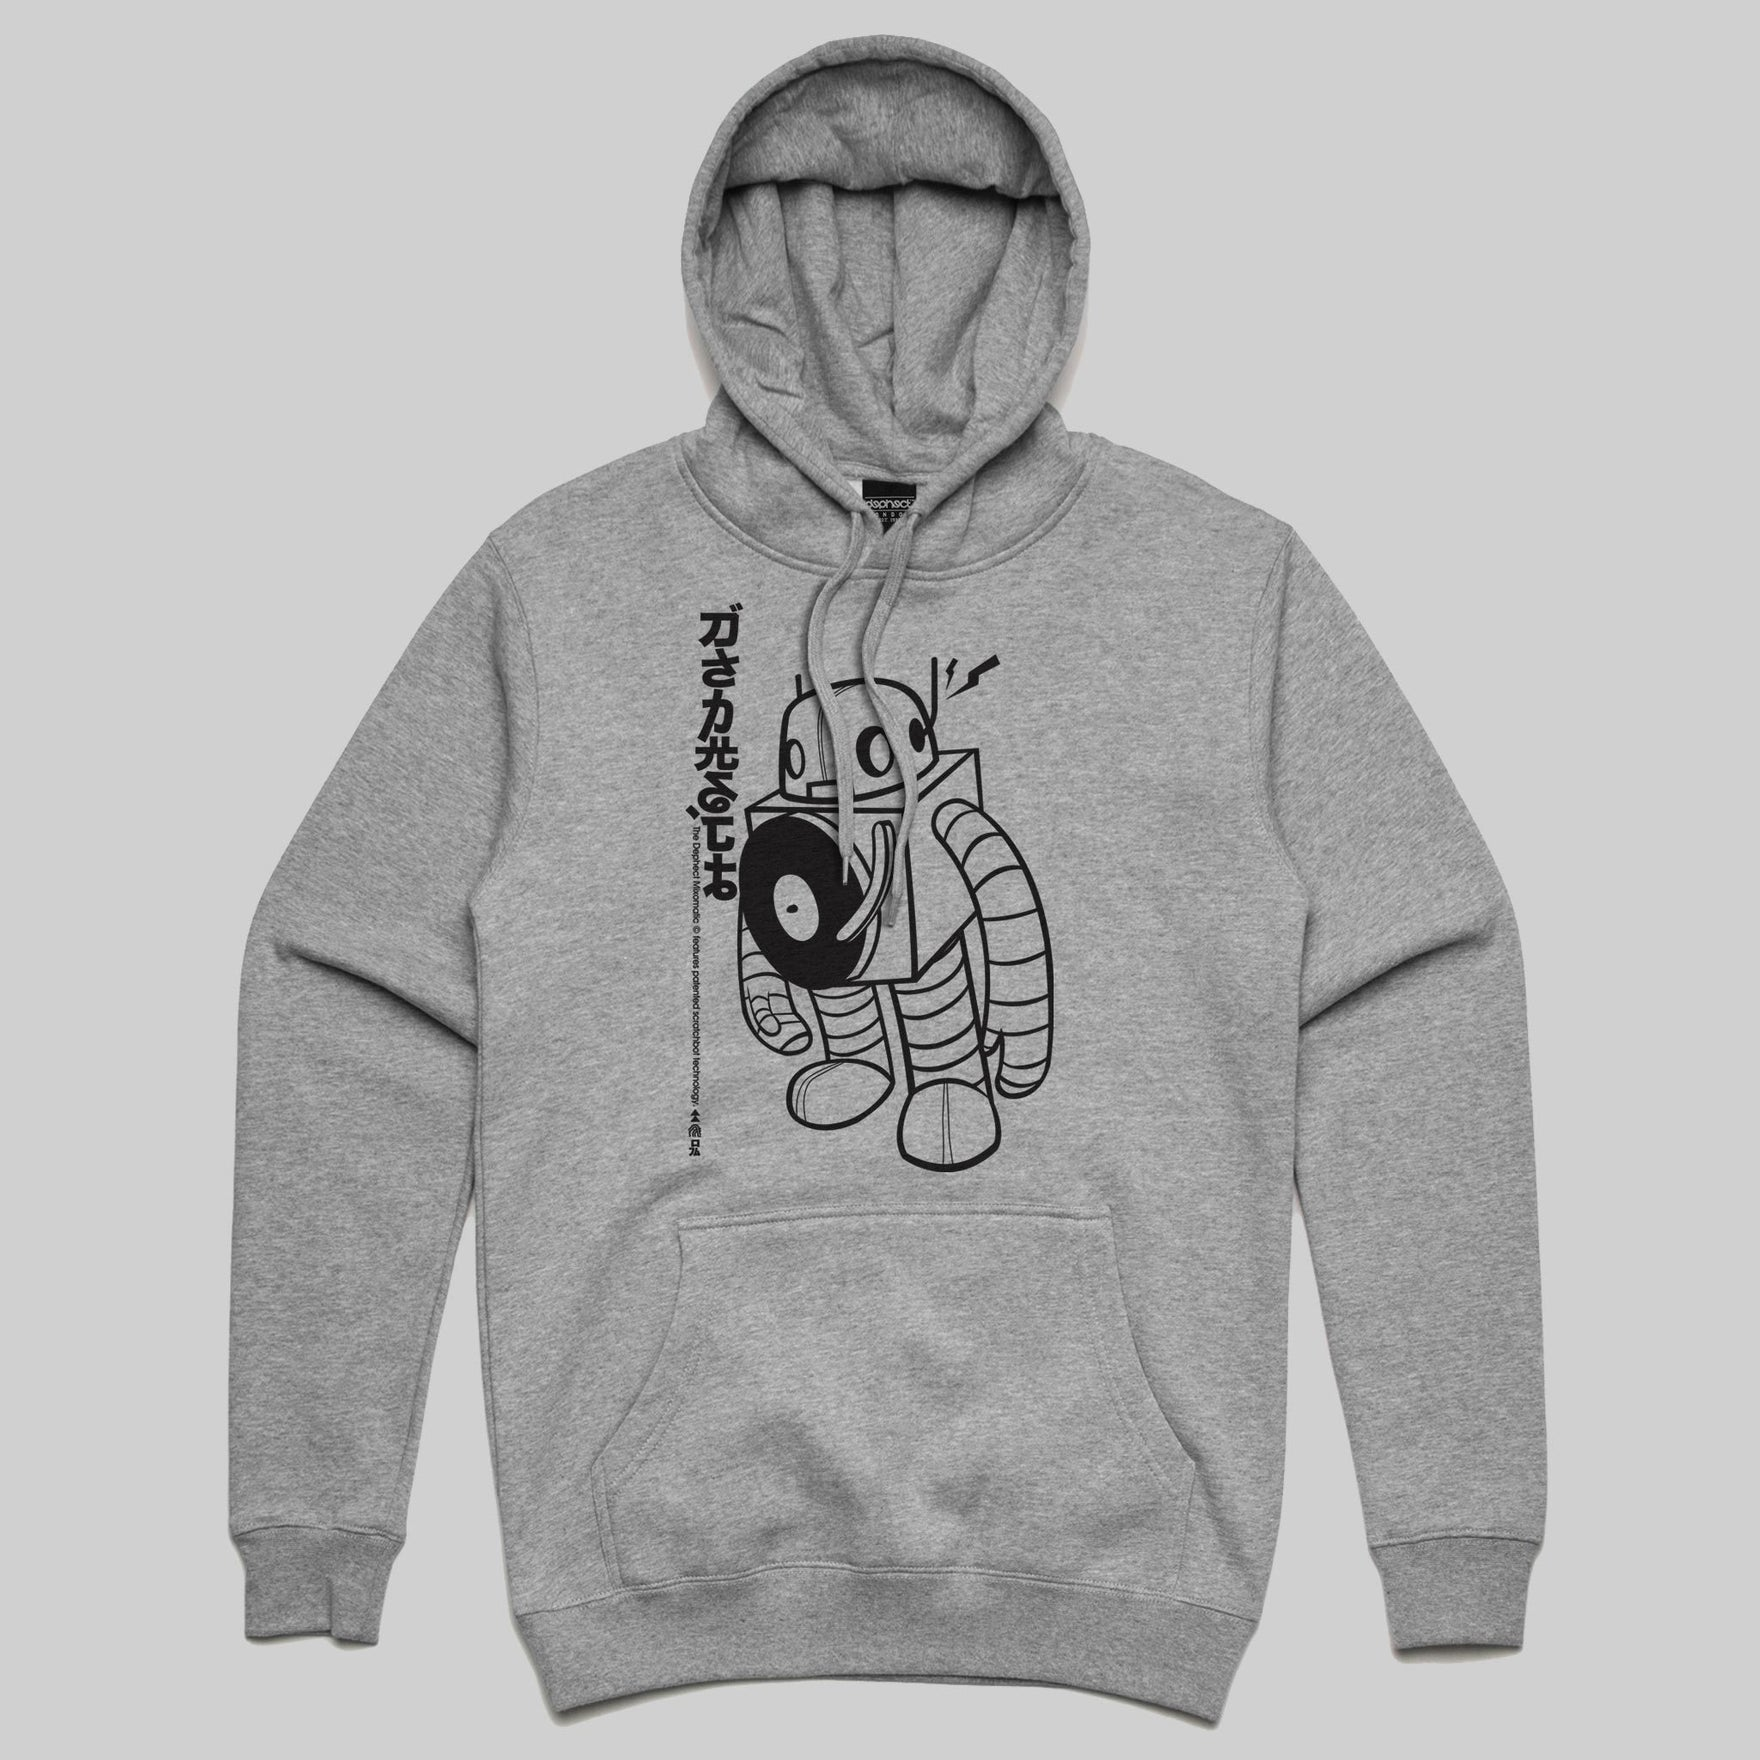 Mixomatic Hoody / Heather Grey / by Keshone